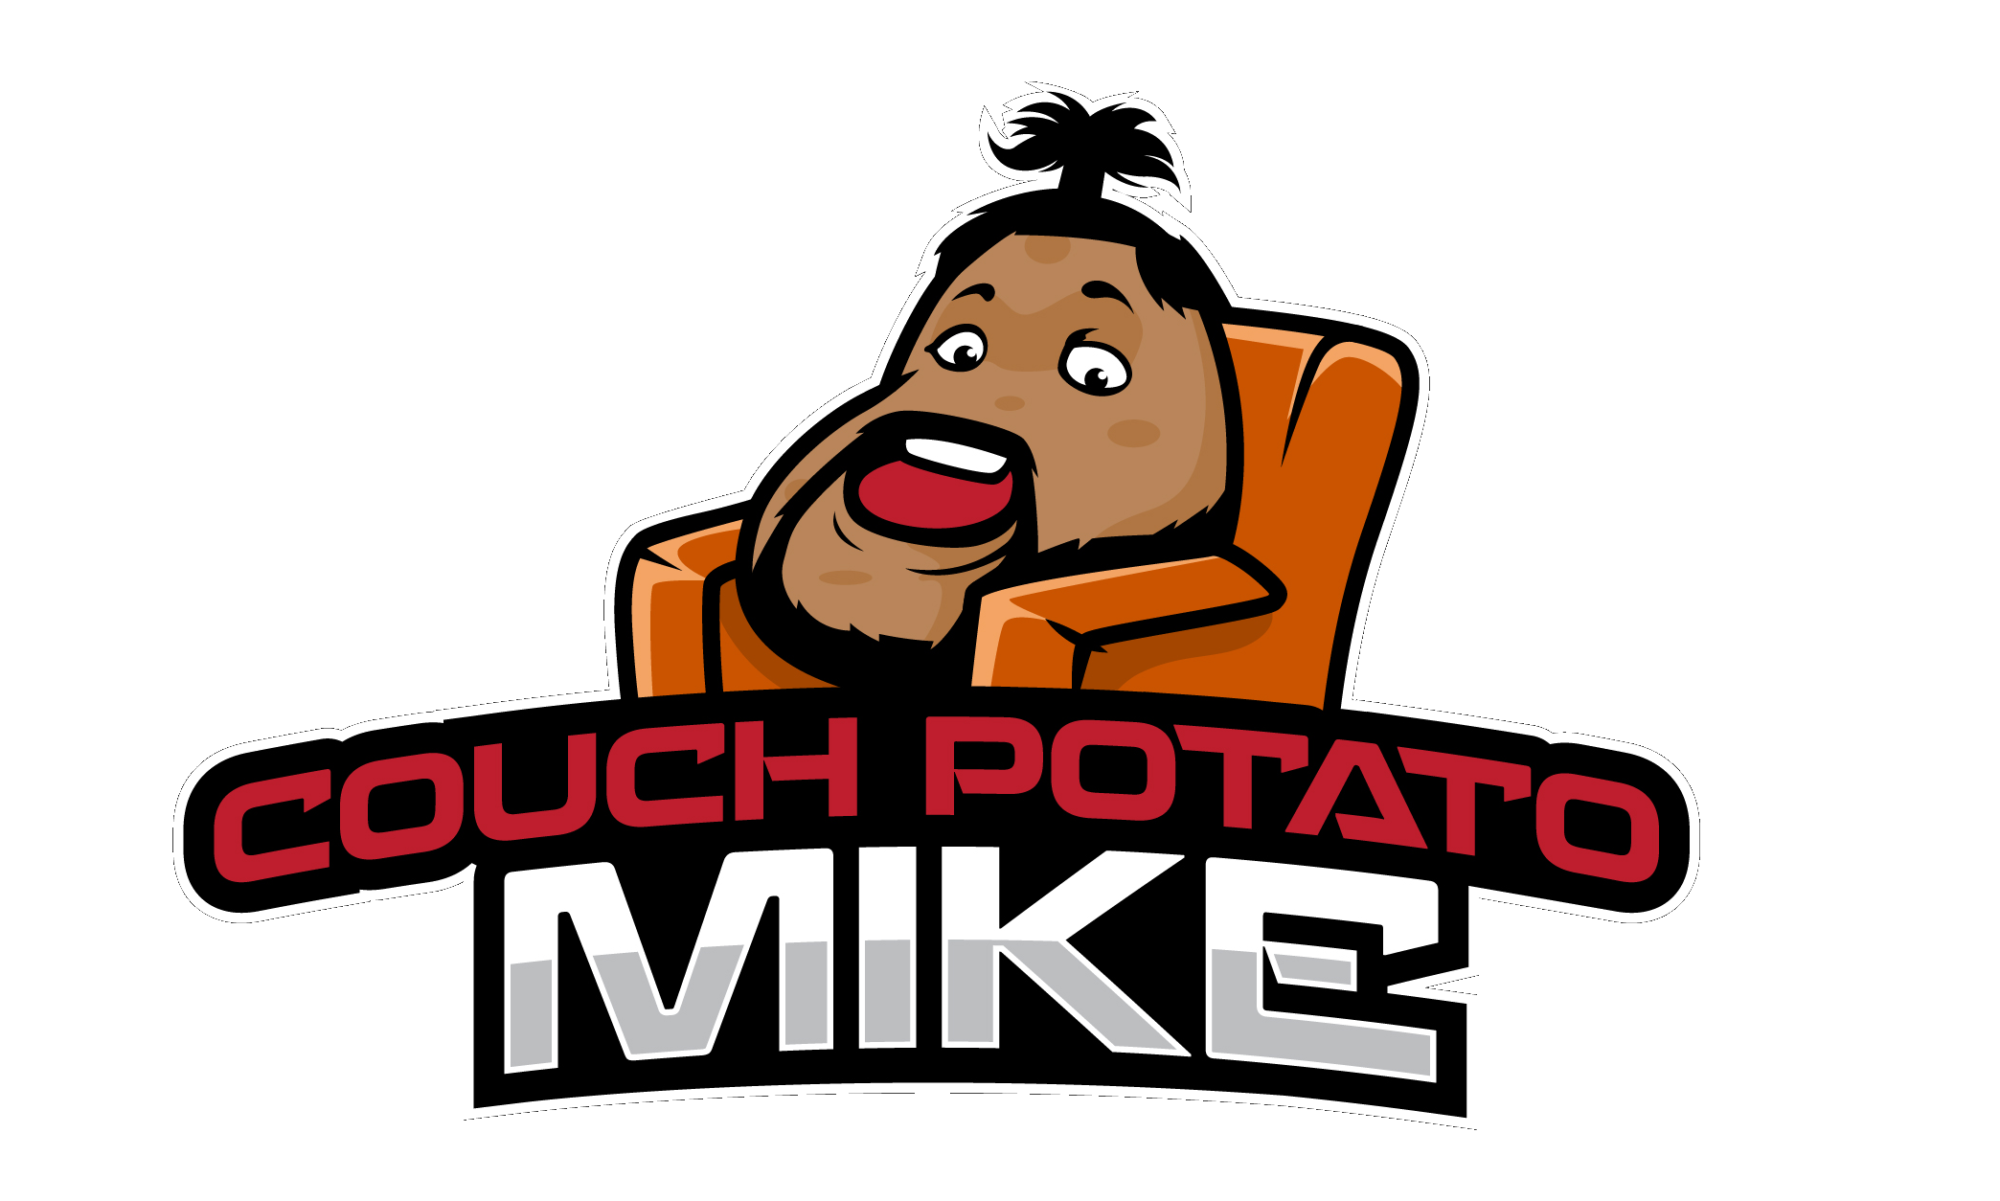 Couch Potato Mike Explains It All